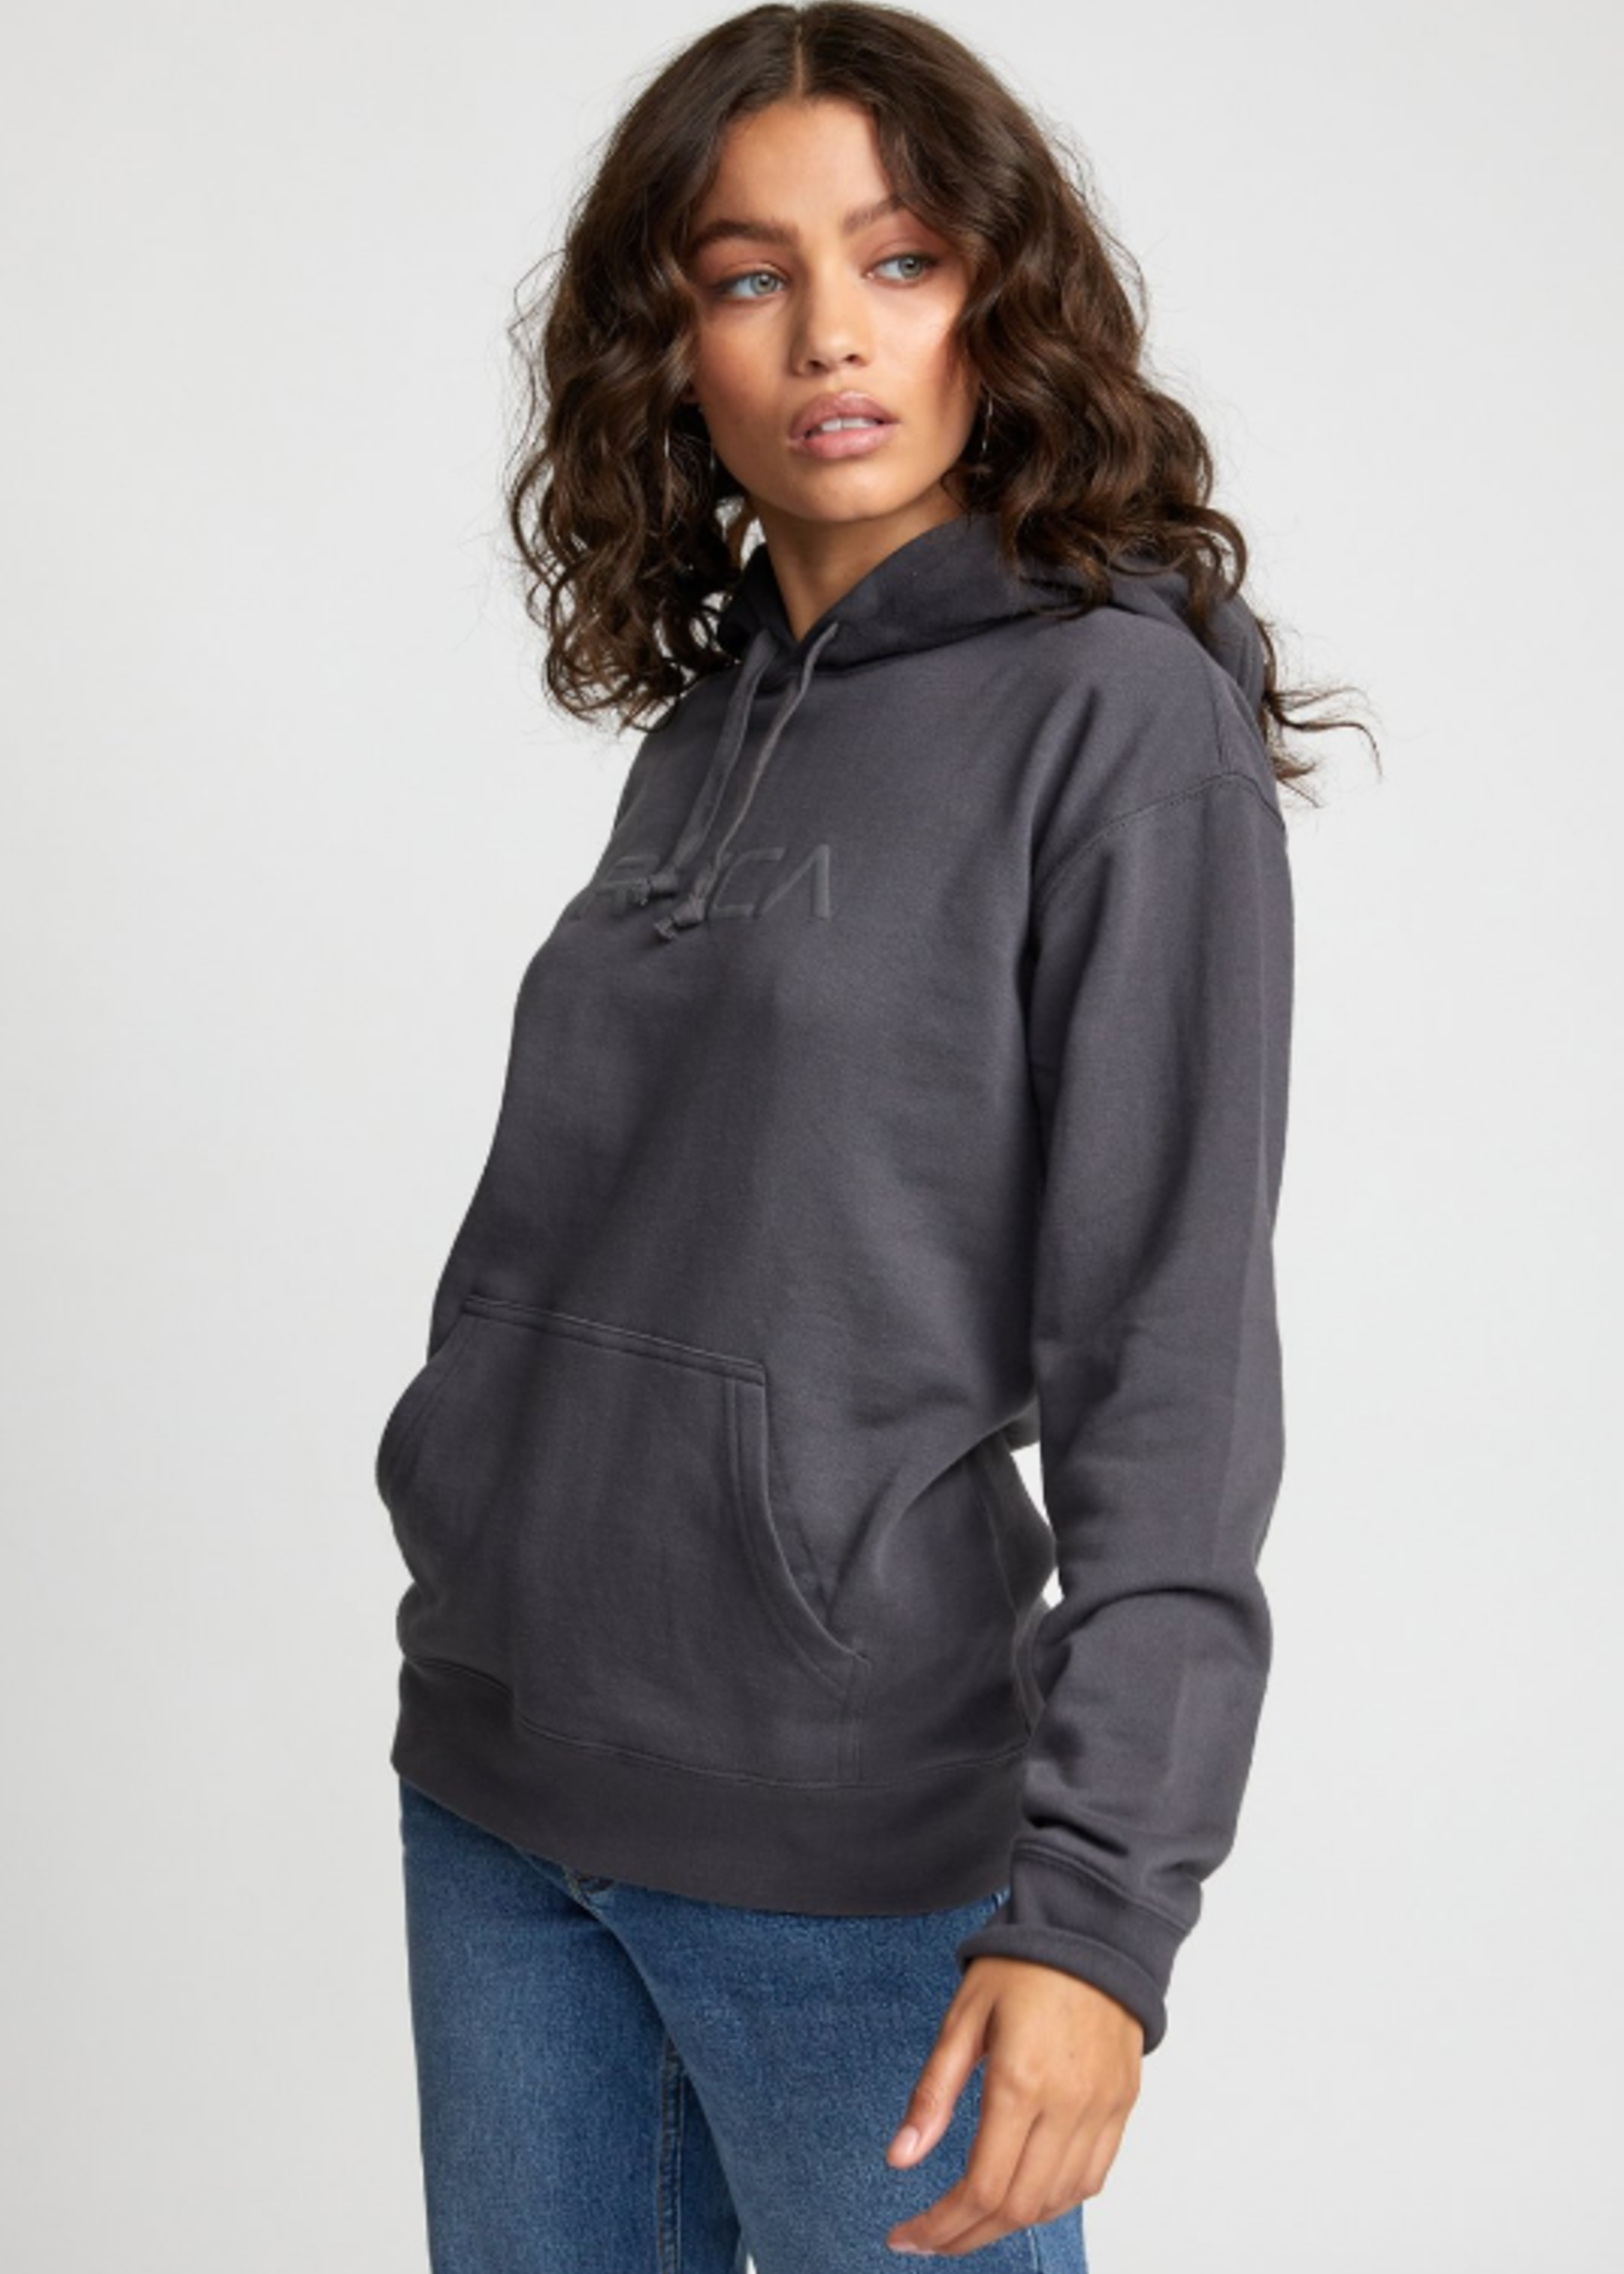 RVCA RVCA Pullover Hoodie - Charcoal